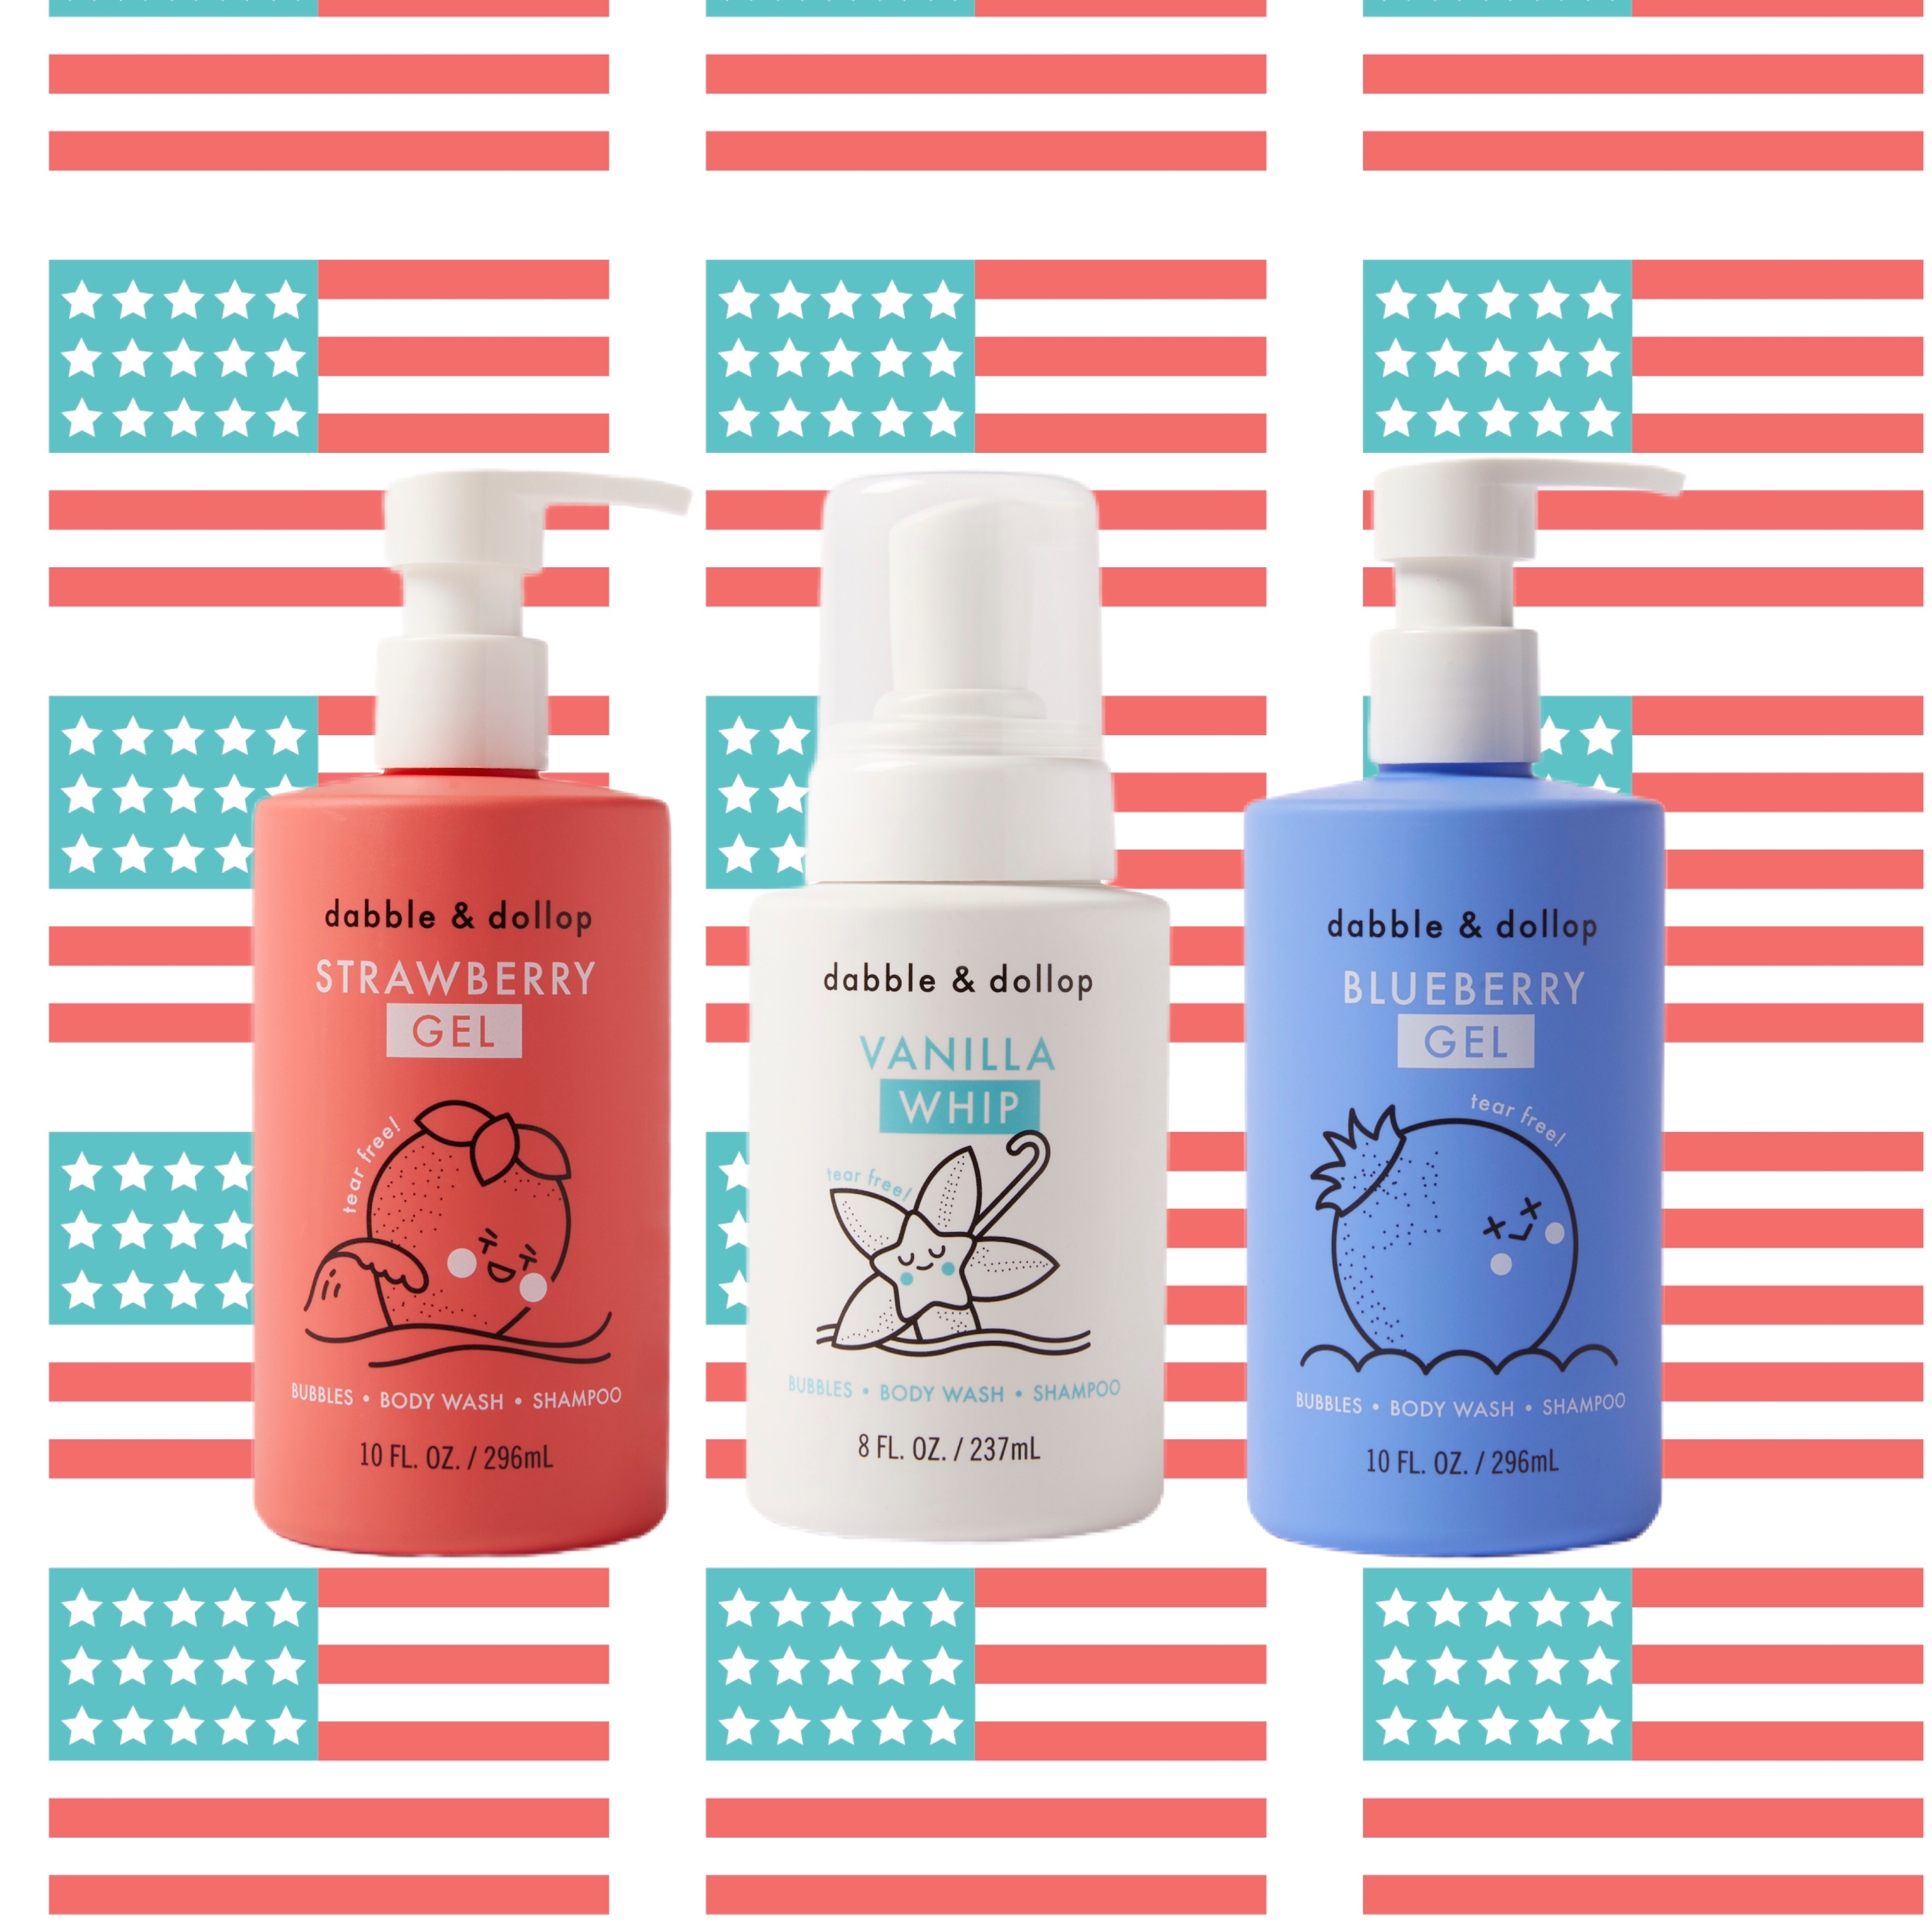 red white and blue bottles of shampoo against a graphical backdrop of American flags